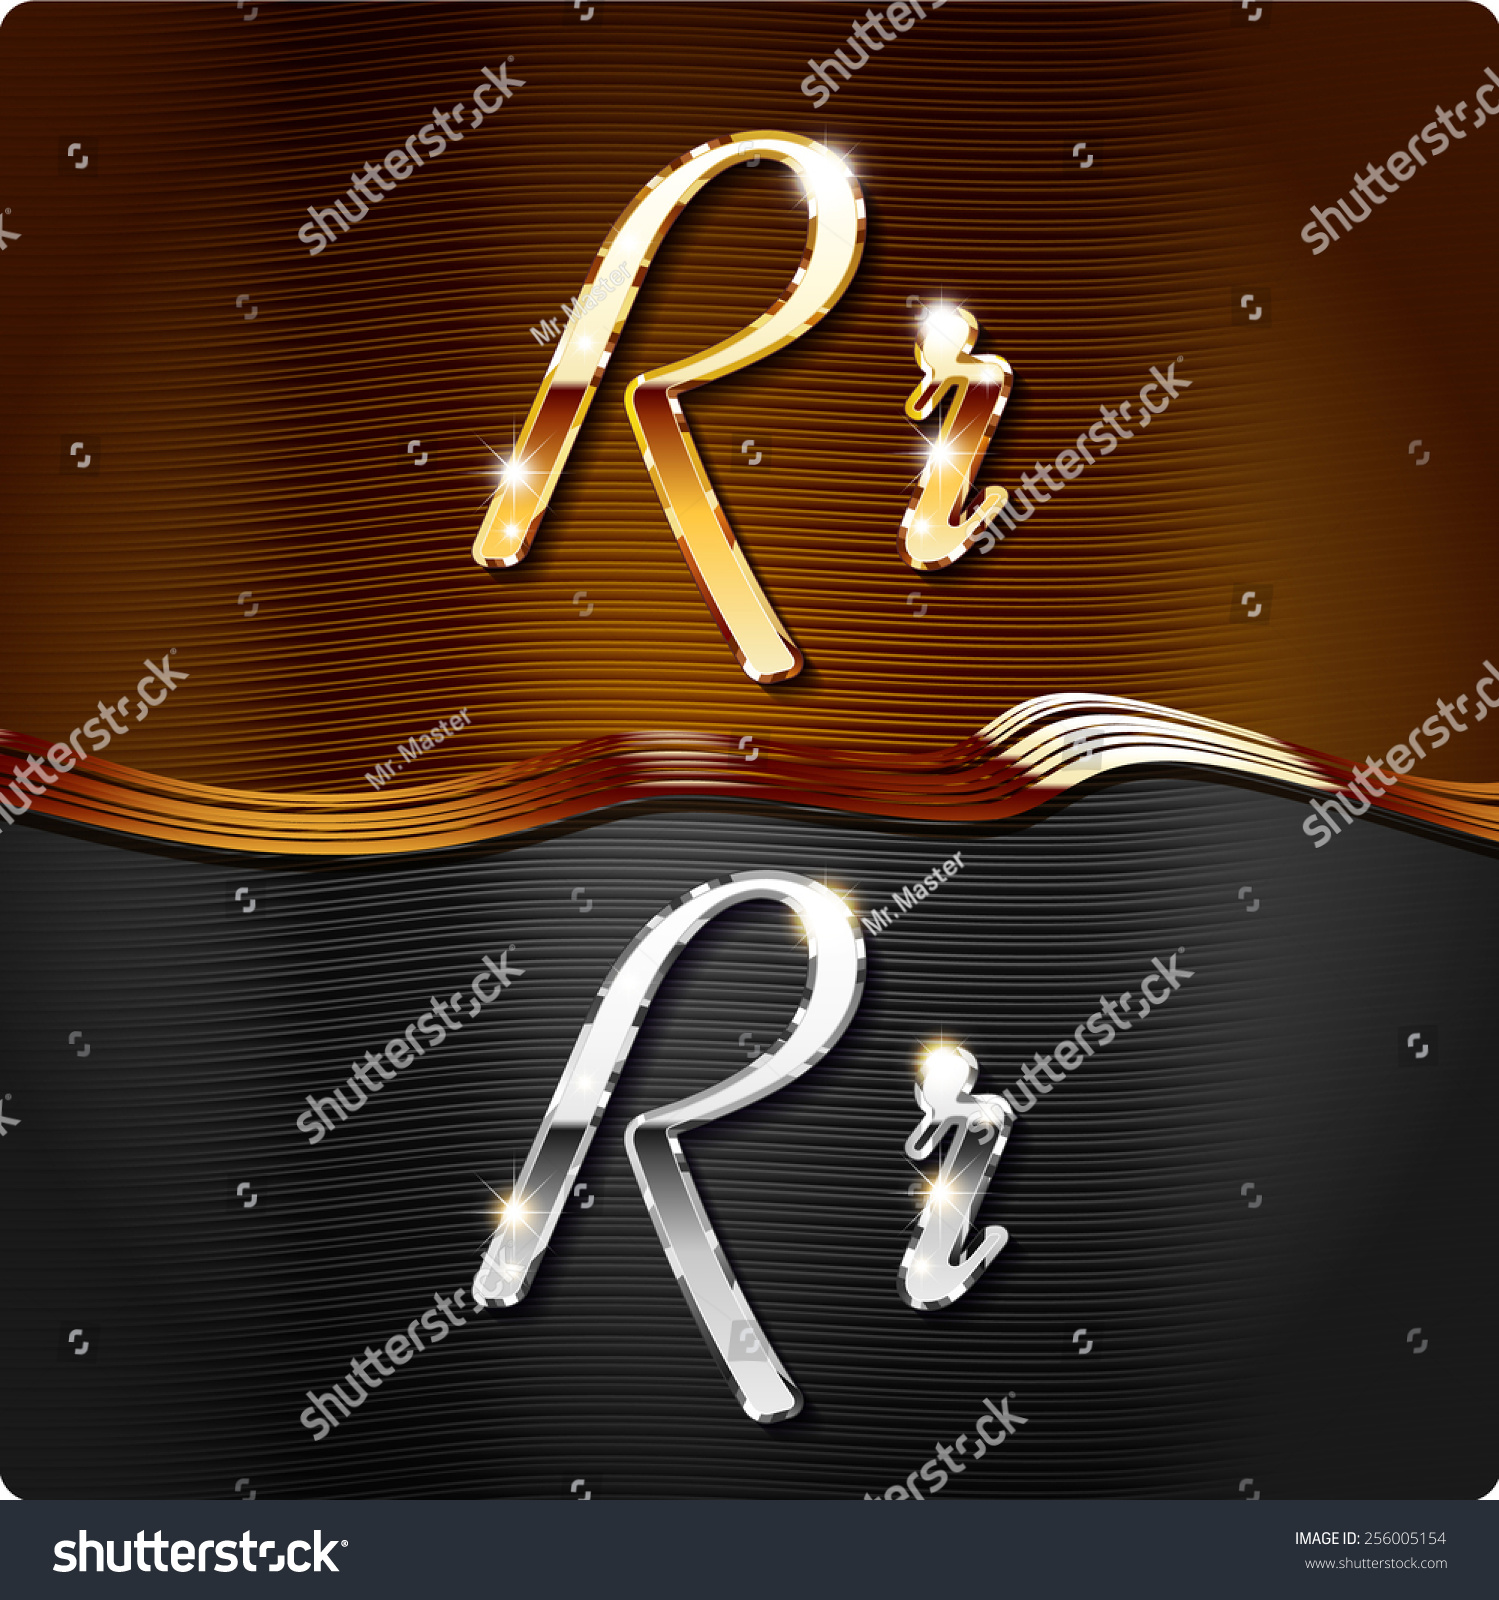 Golden stylish italic letters and italic metal letters of the alphabet   Capital letter  R. Golden Stylish Italic Letters Italic Metal Stock Vector 256005154